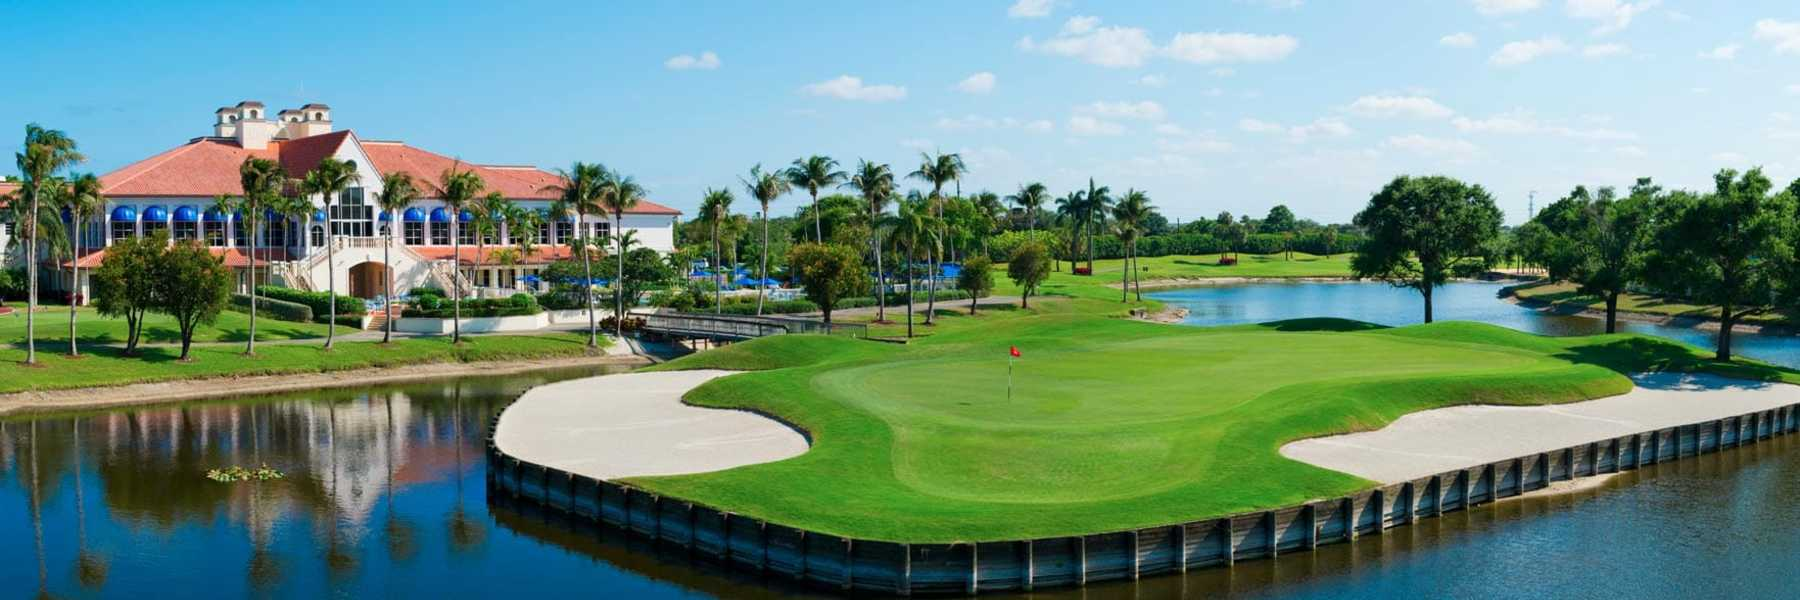 Golf Vacation Package - Boca Raton Resort Country Club Course